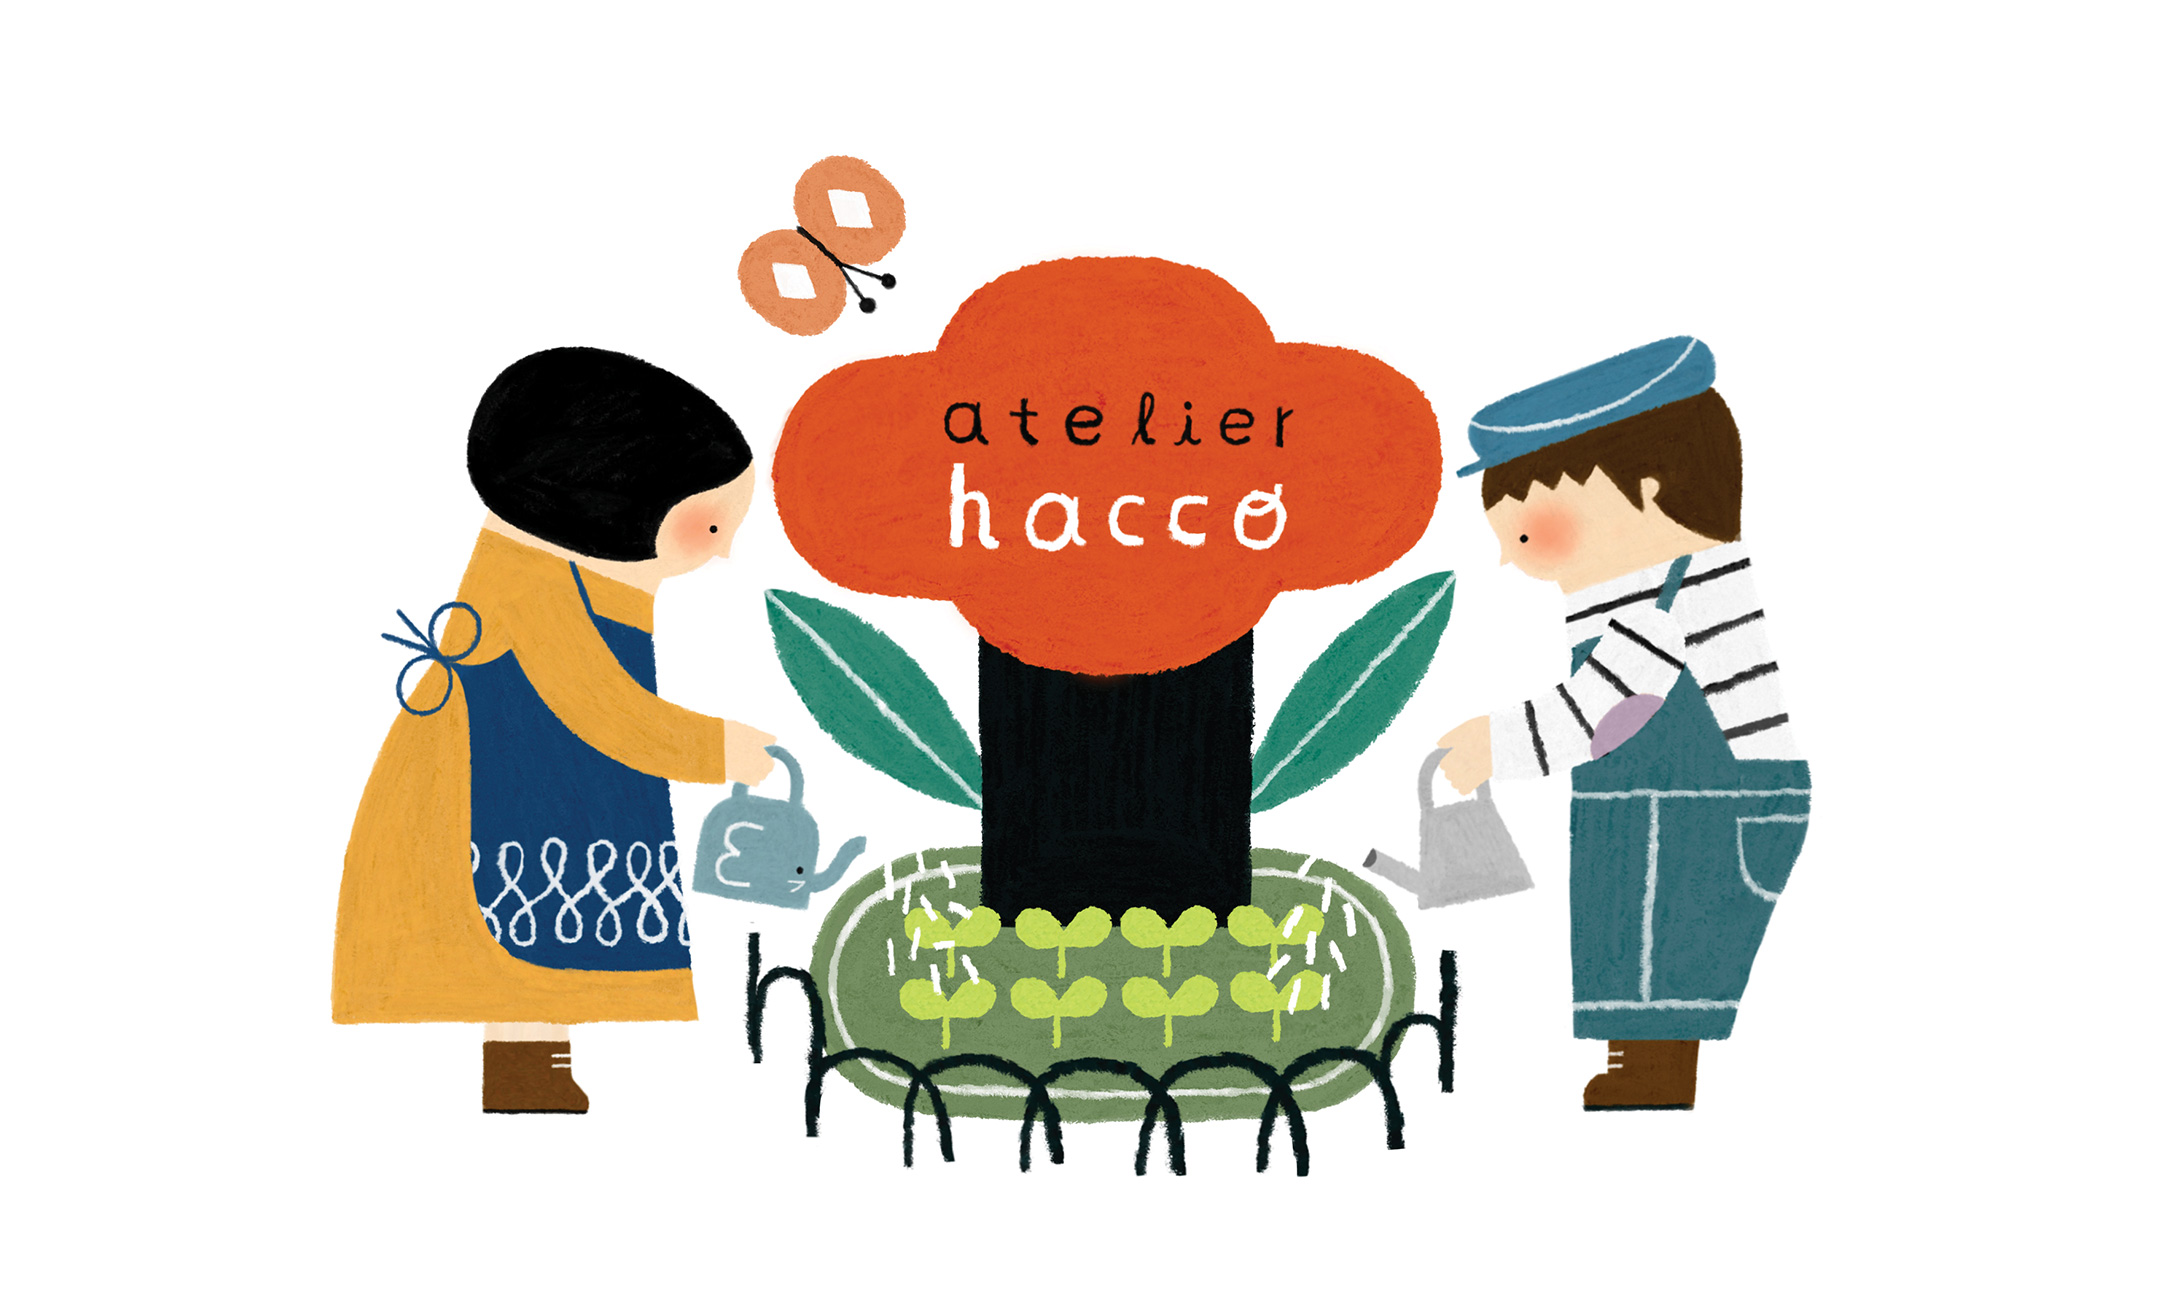 hacco plus CAFE image